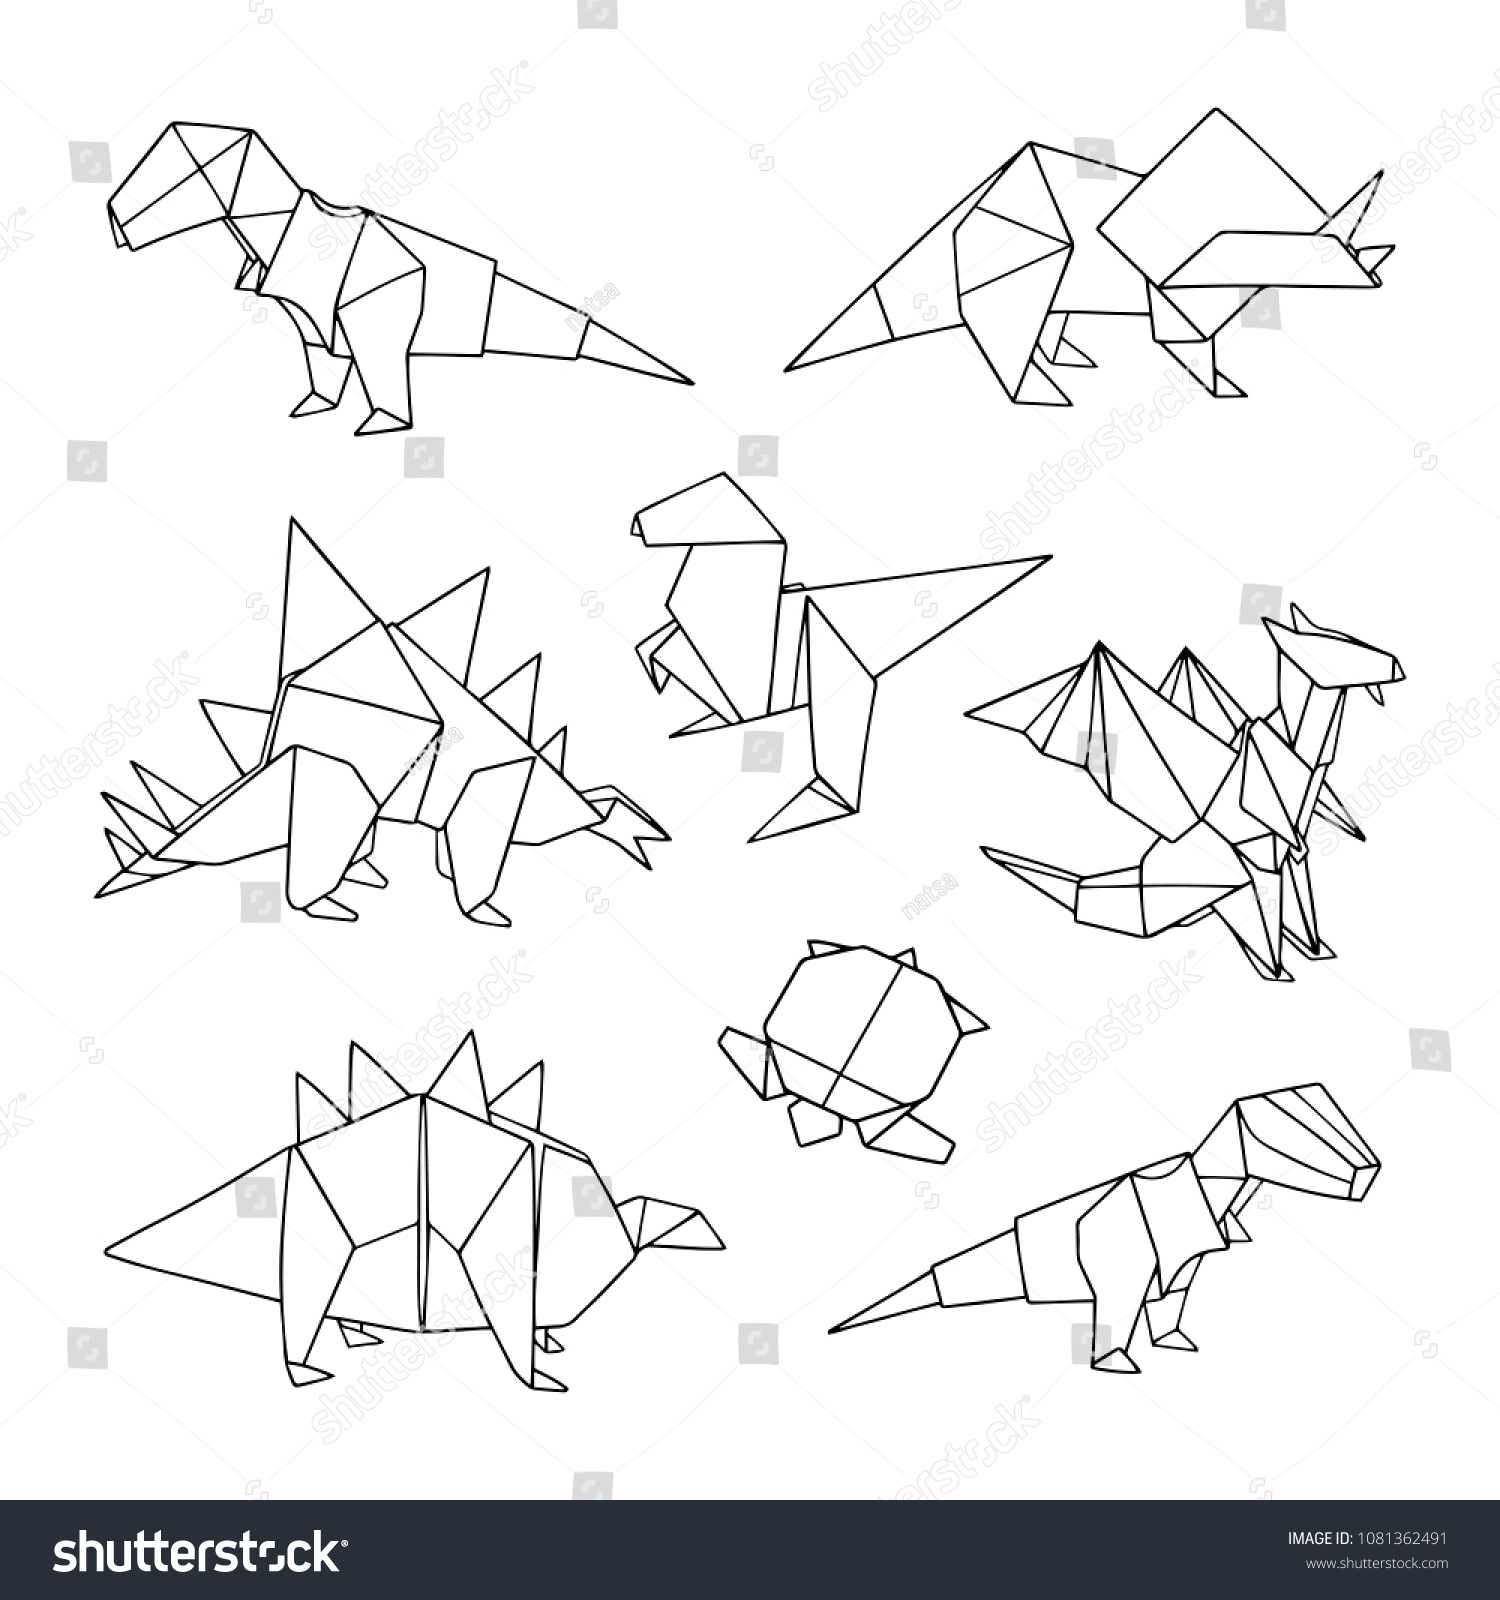 Vector Set Origami Animals Dinosaurs Turtle Stock Royalty Origamiorigami Diagramsorigami Of And A Lovely Hand Drawn Illustration With